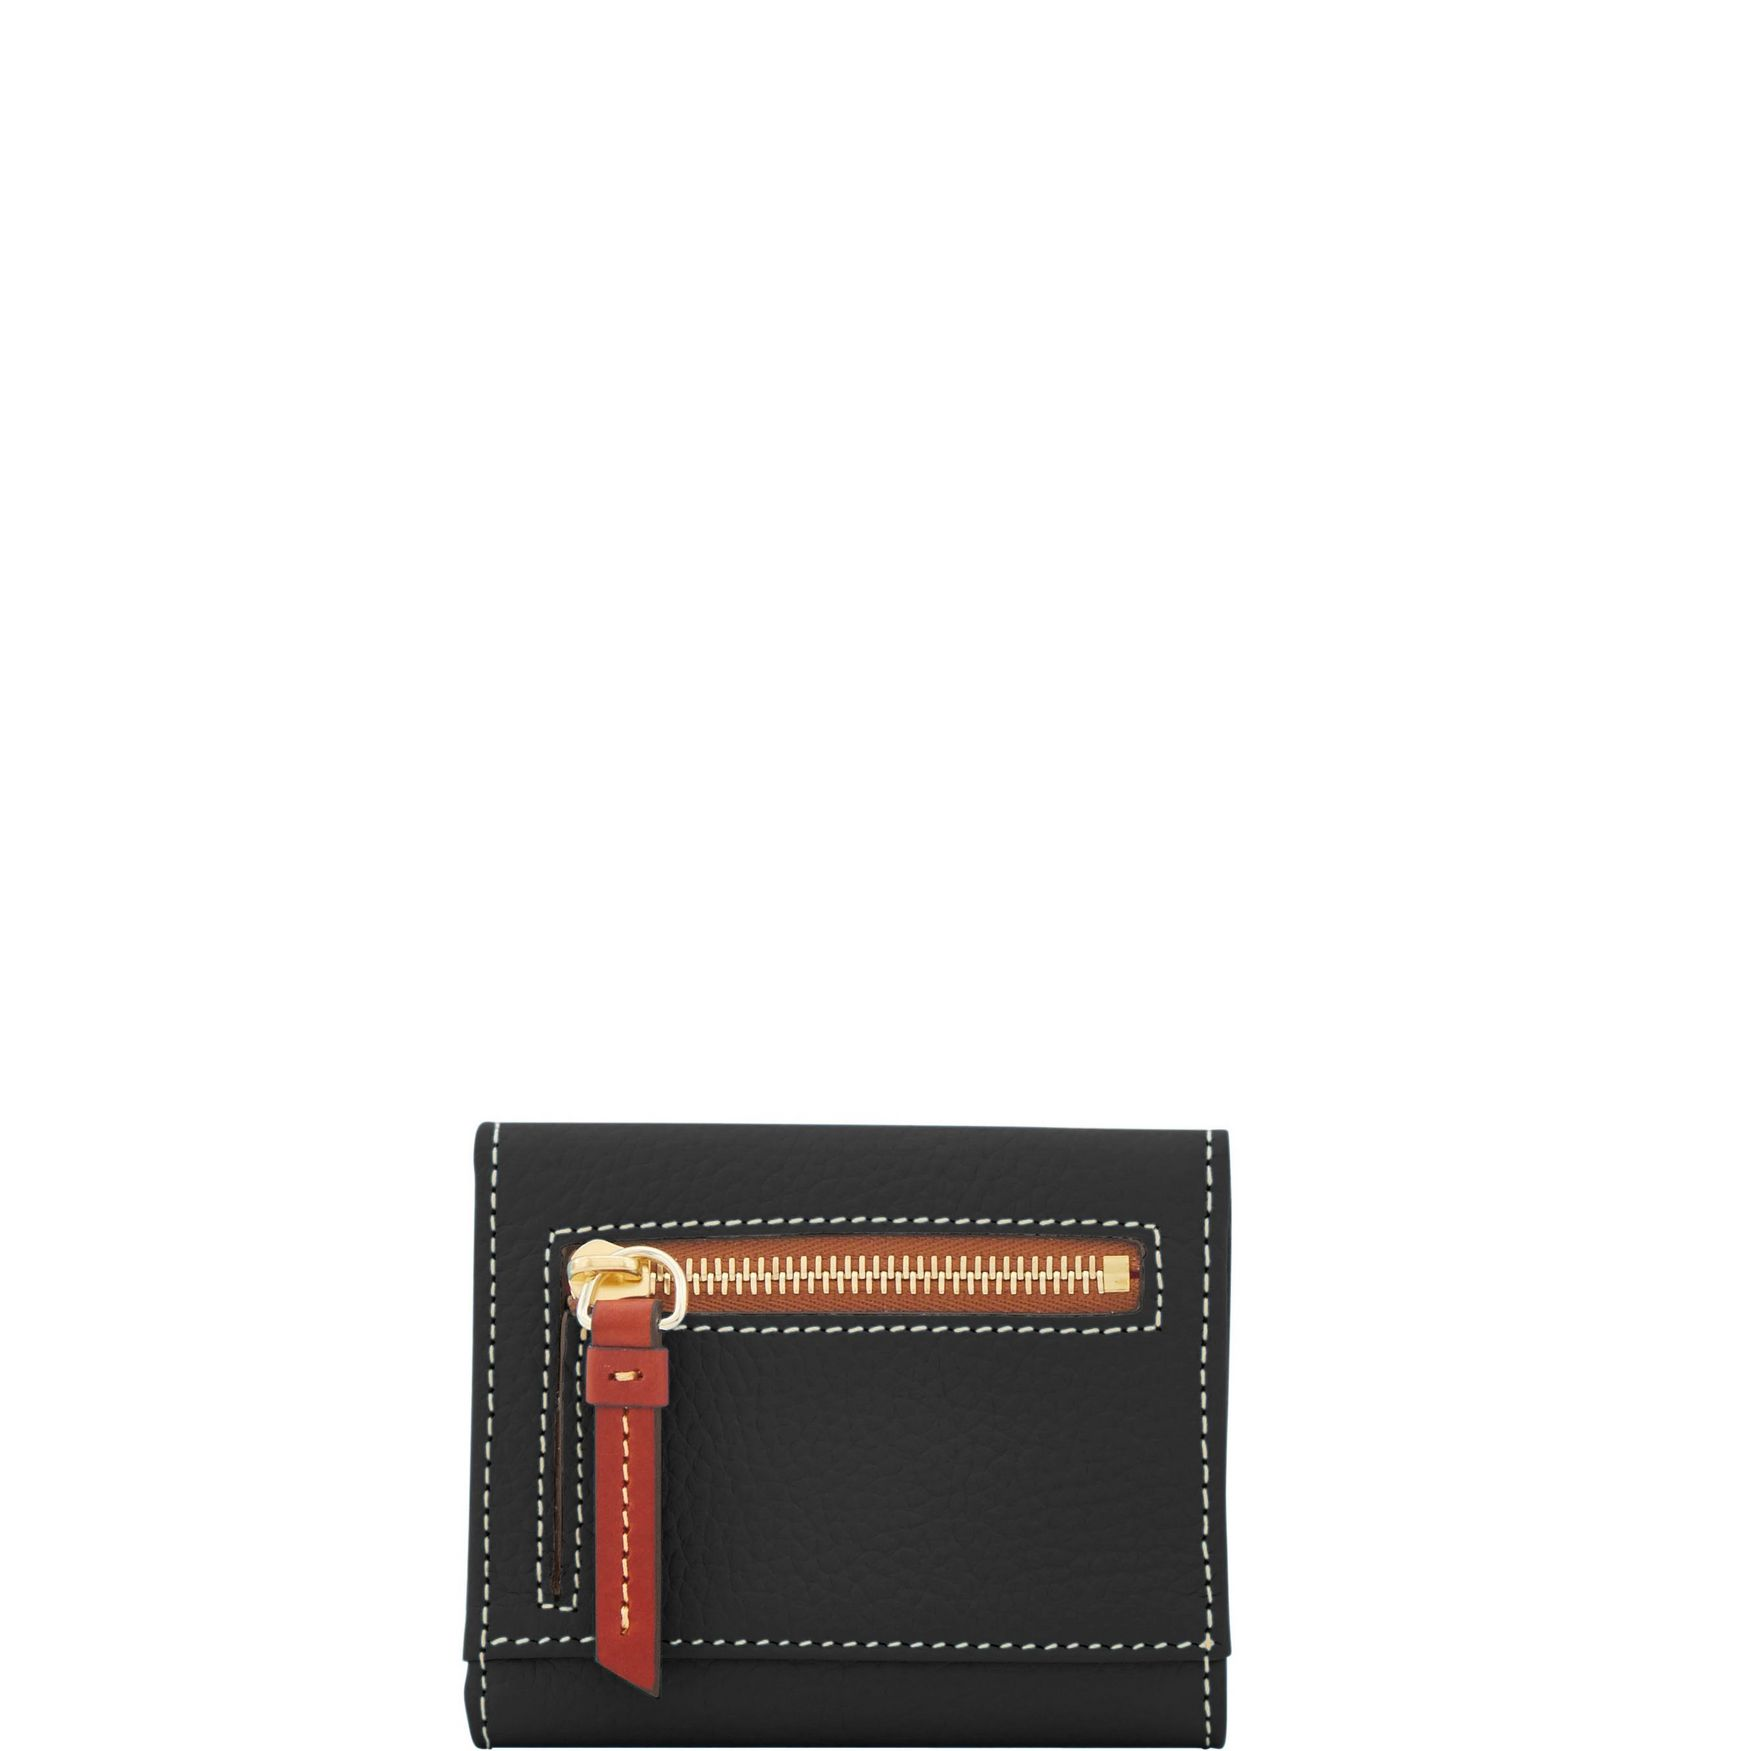 Dooney-amp-Bourke-Pebble-Grain-Small-Flap-Wallet thumbnail 6